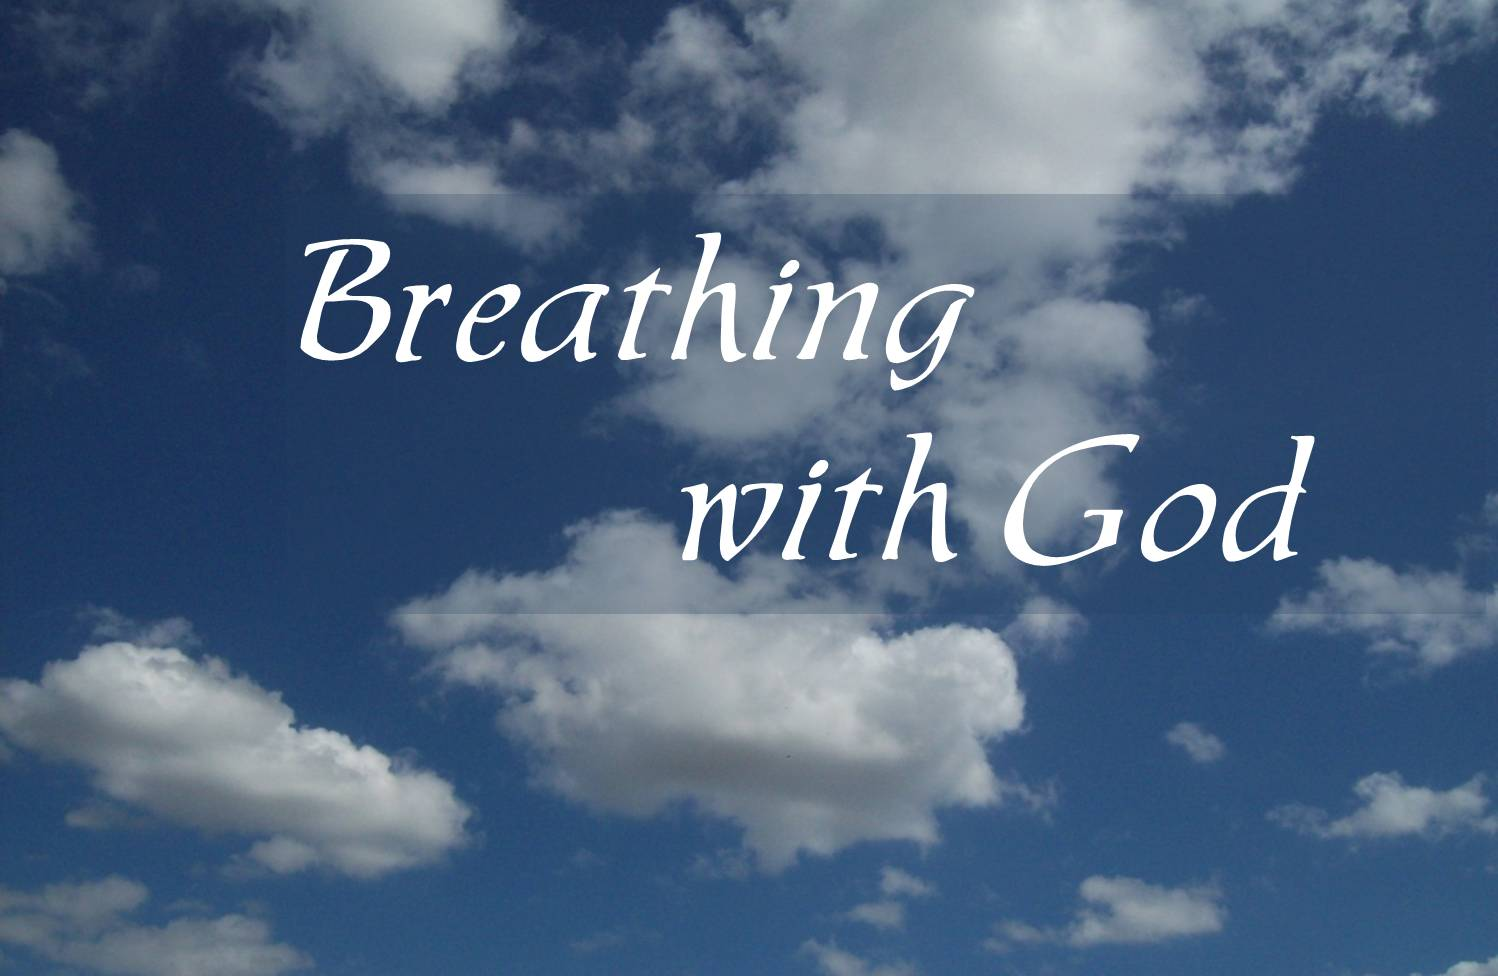 https://kingdomwalking.files.wordpress.com/2015/01/breathing-with-god.jpg